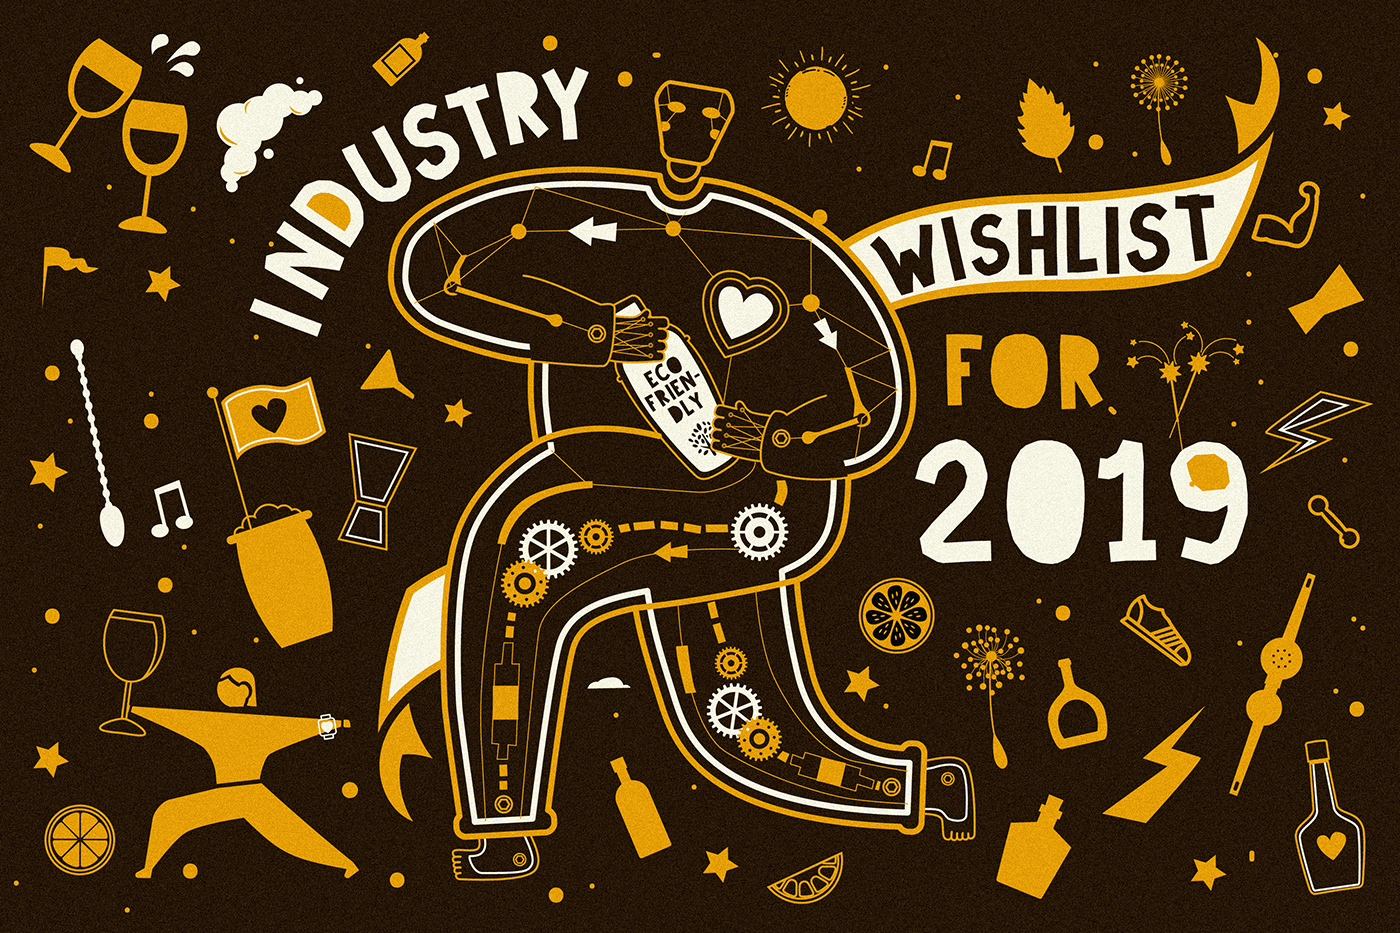 The Bar Industry's Wish List For 2019 photo